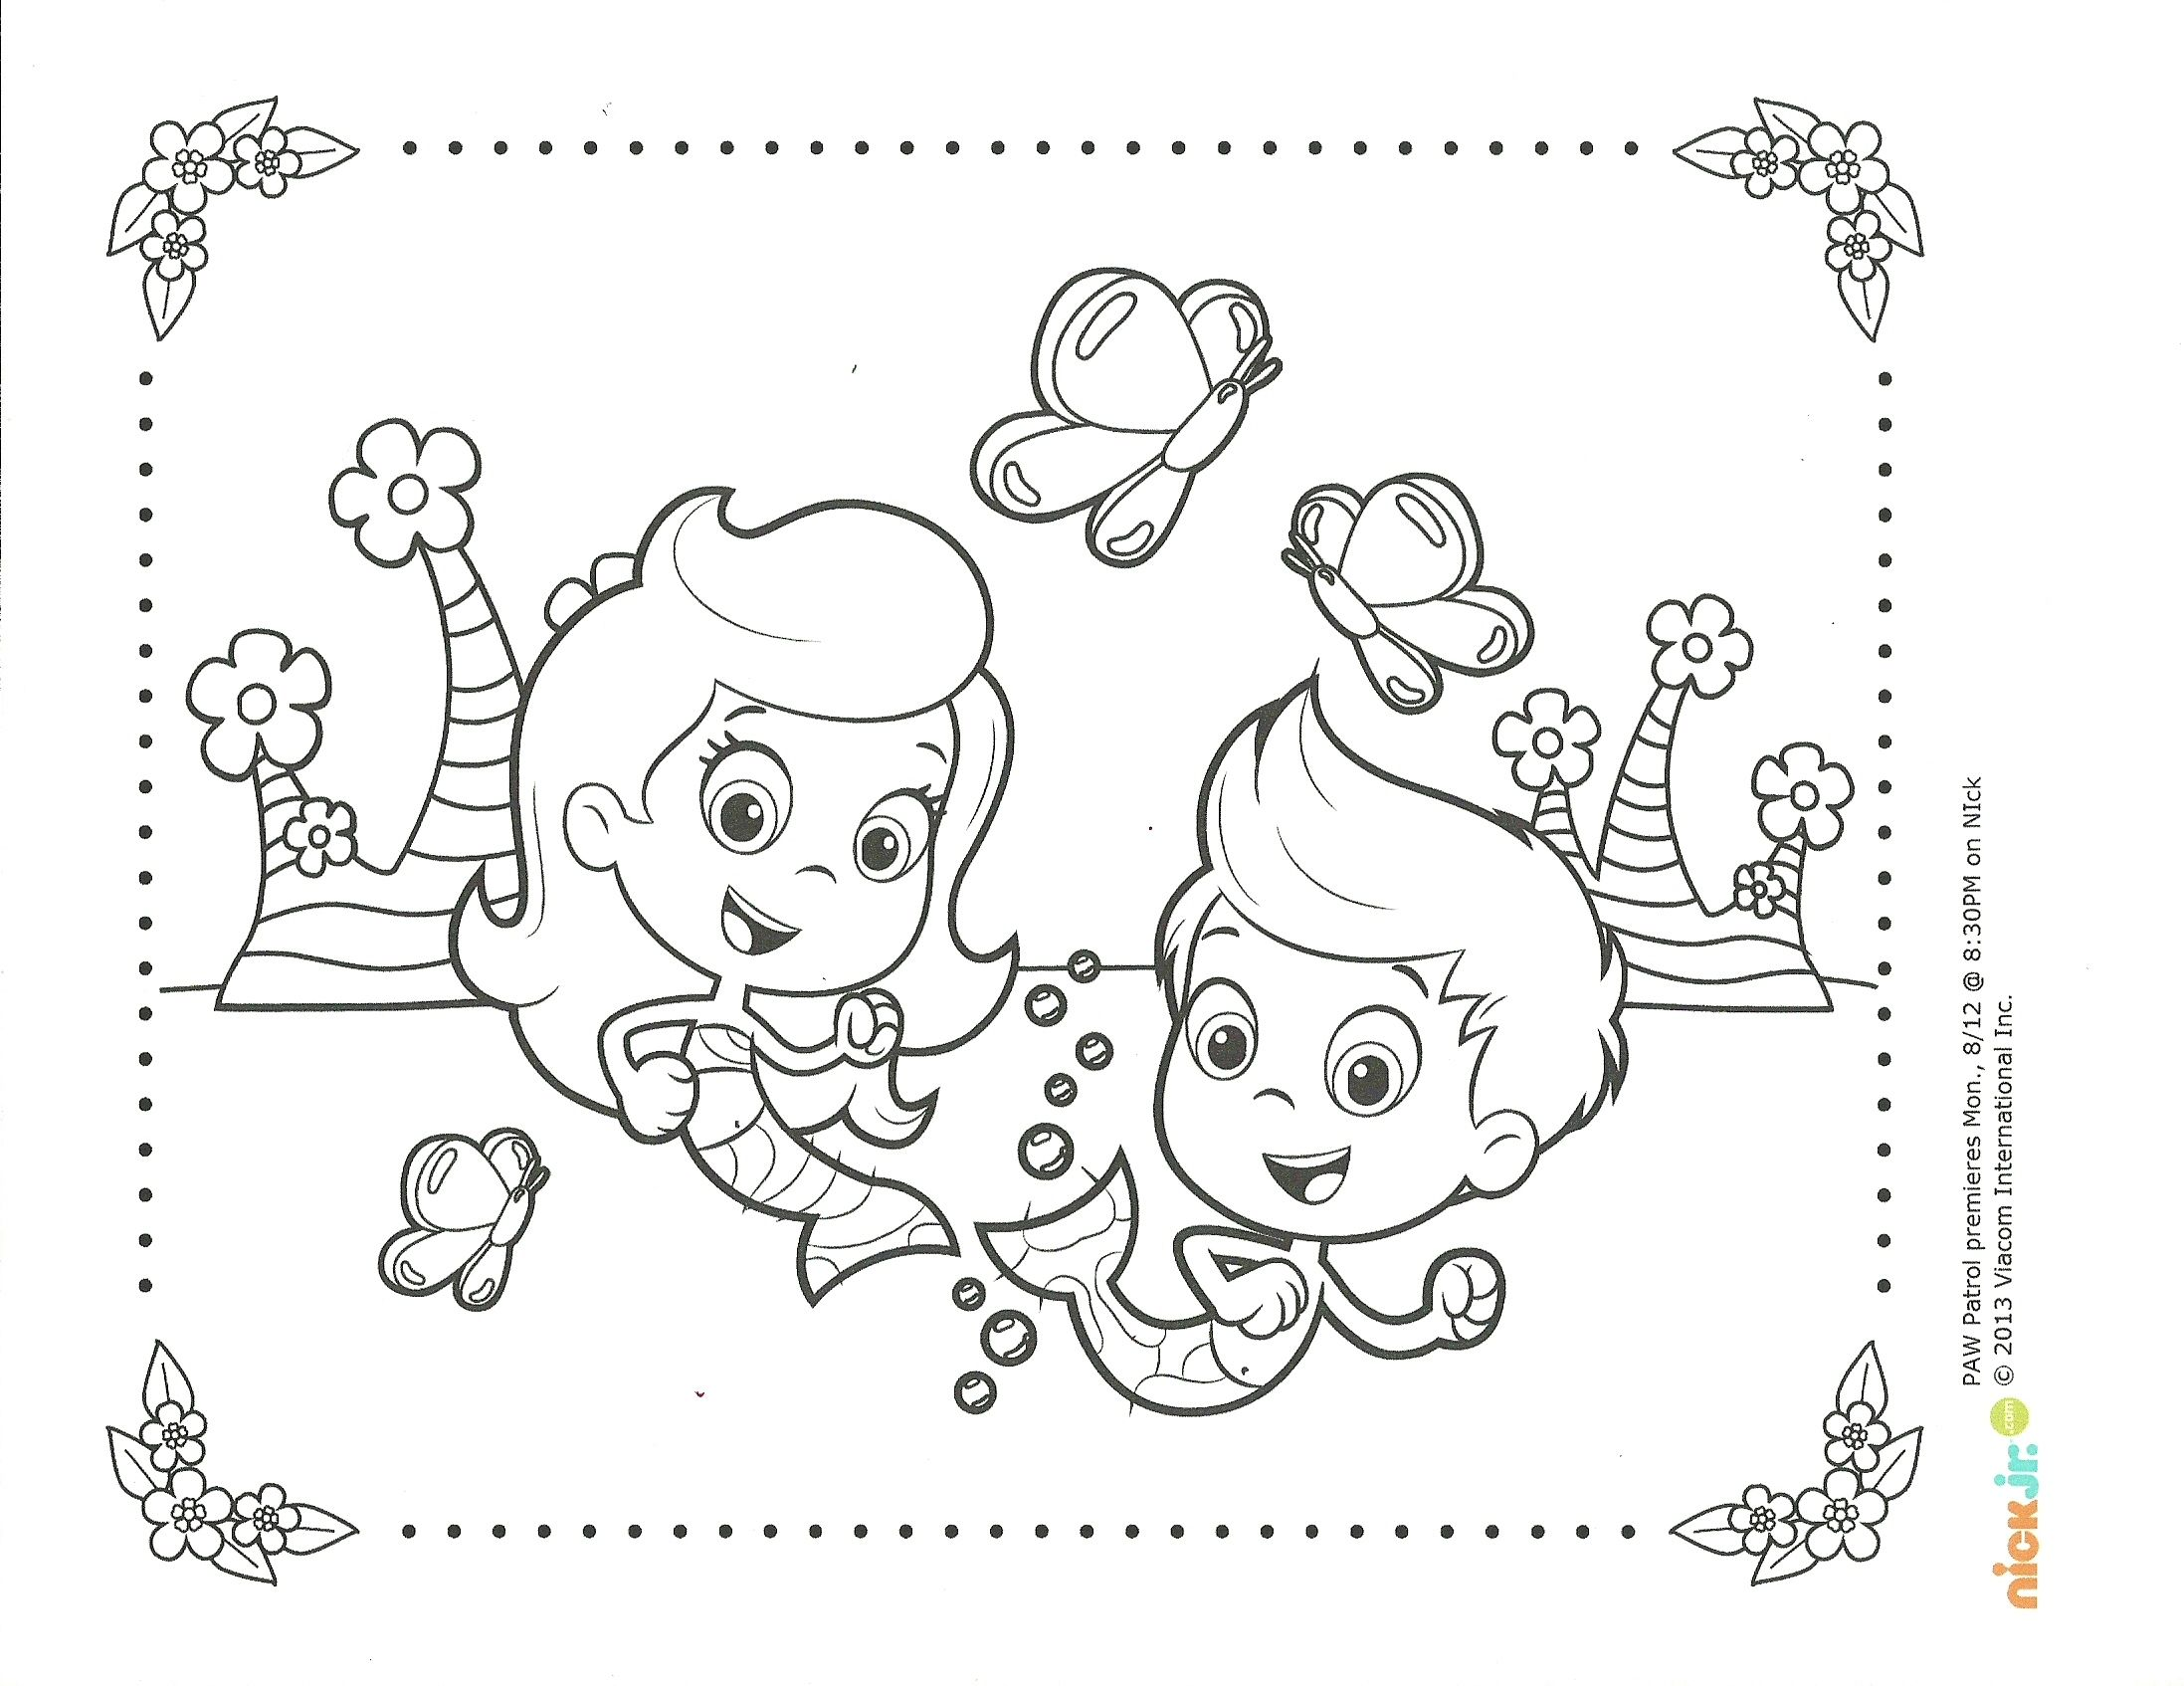 Bubble Guppies Coloring Page | COLORING PAGES FOR FREE | Pinterest